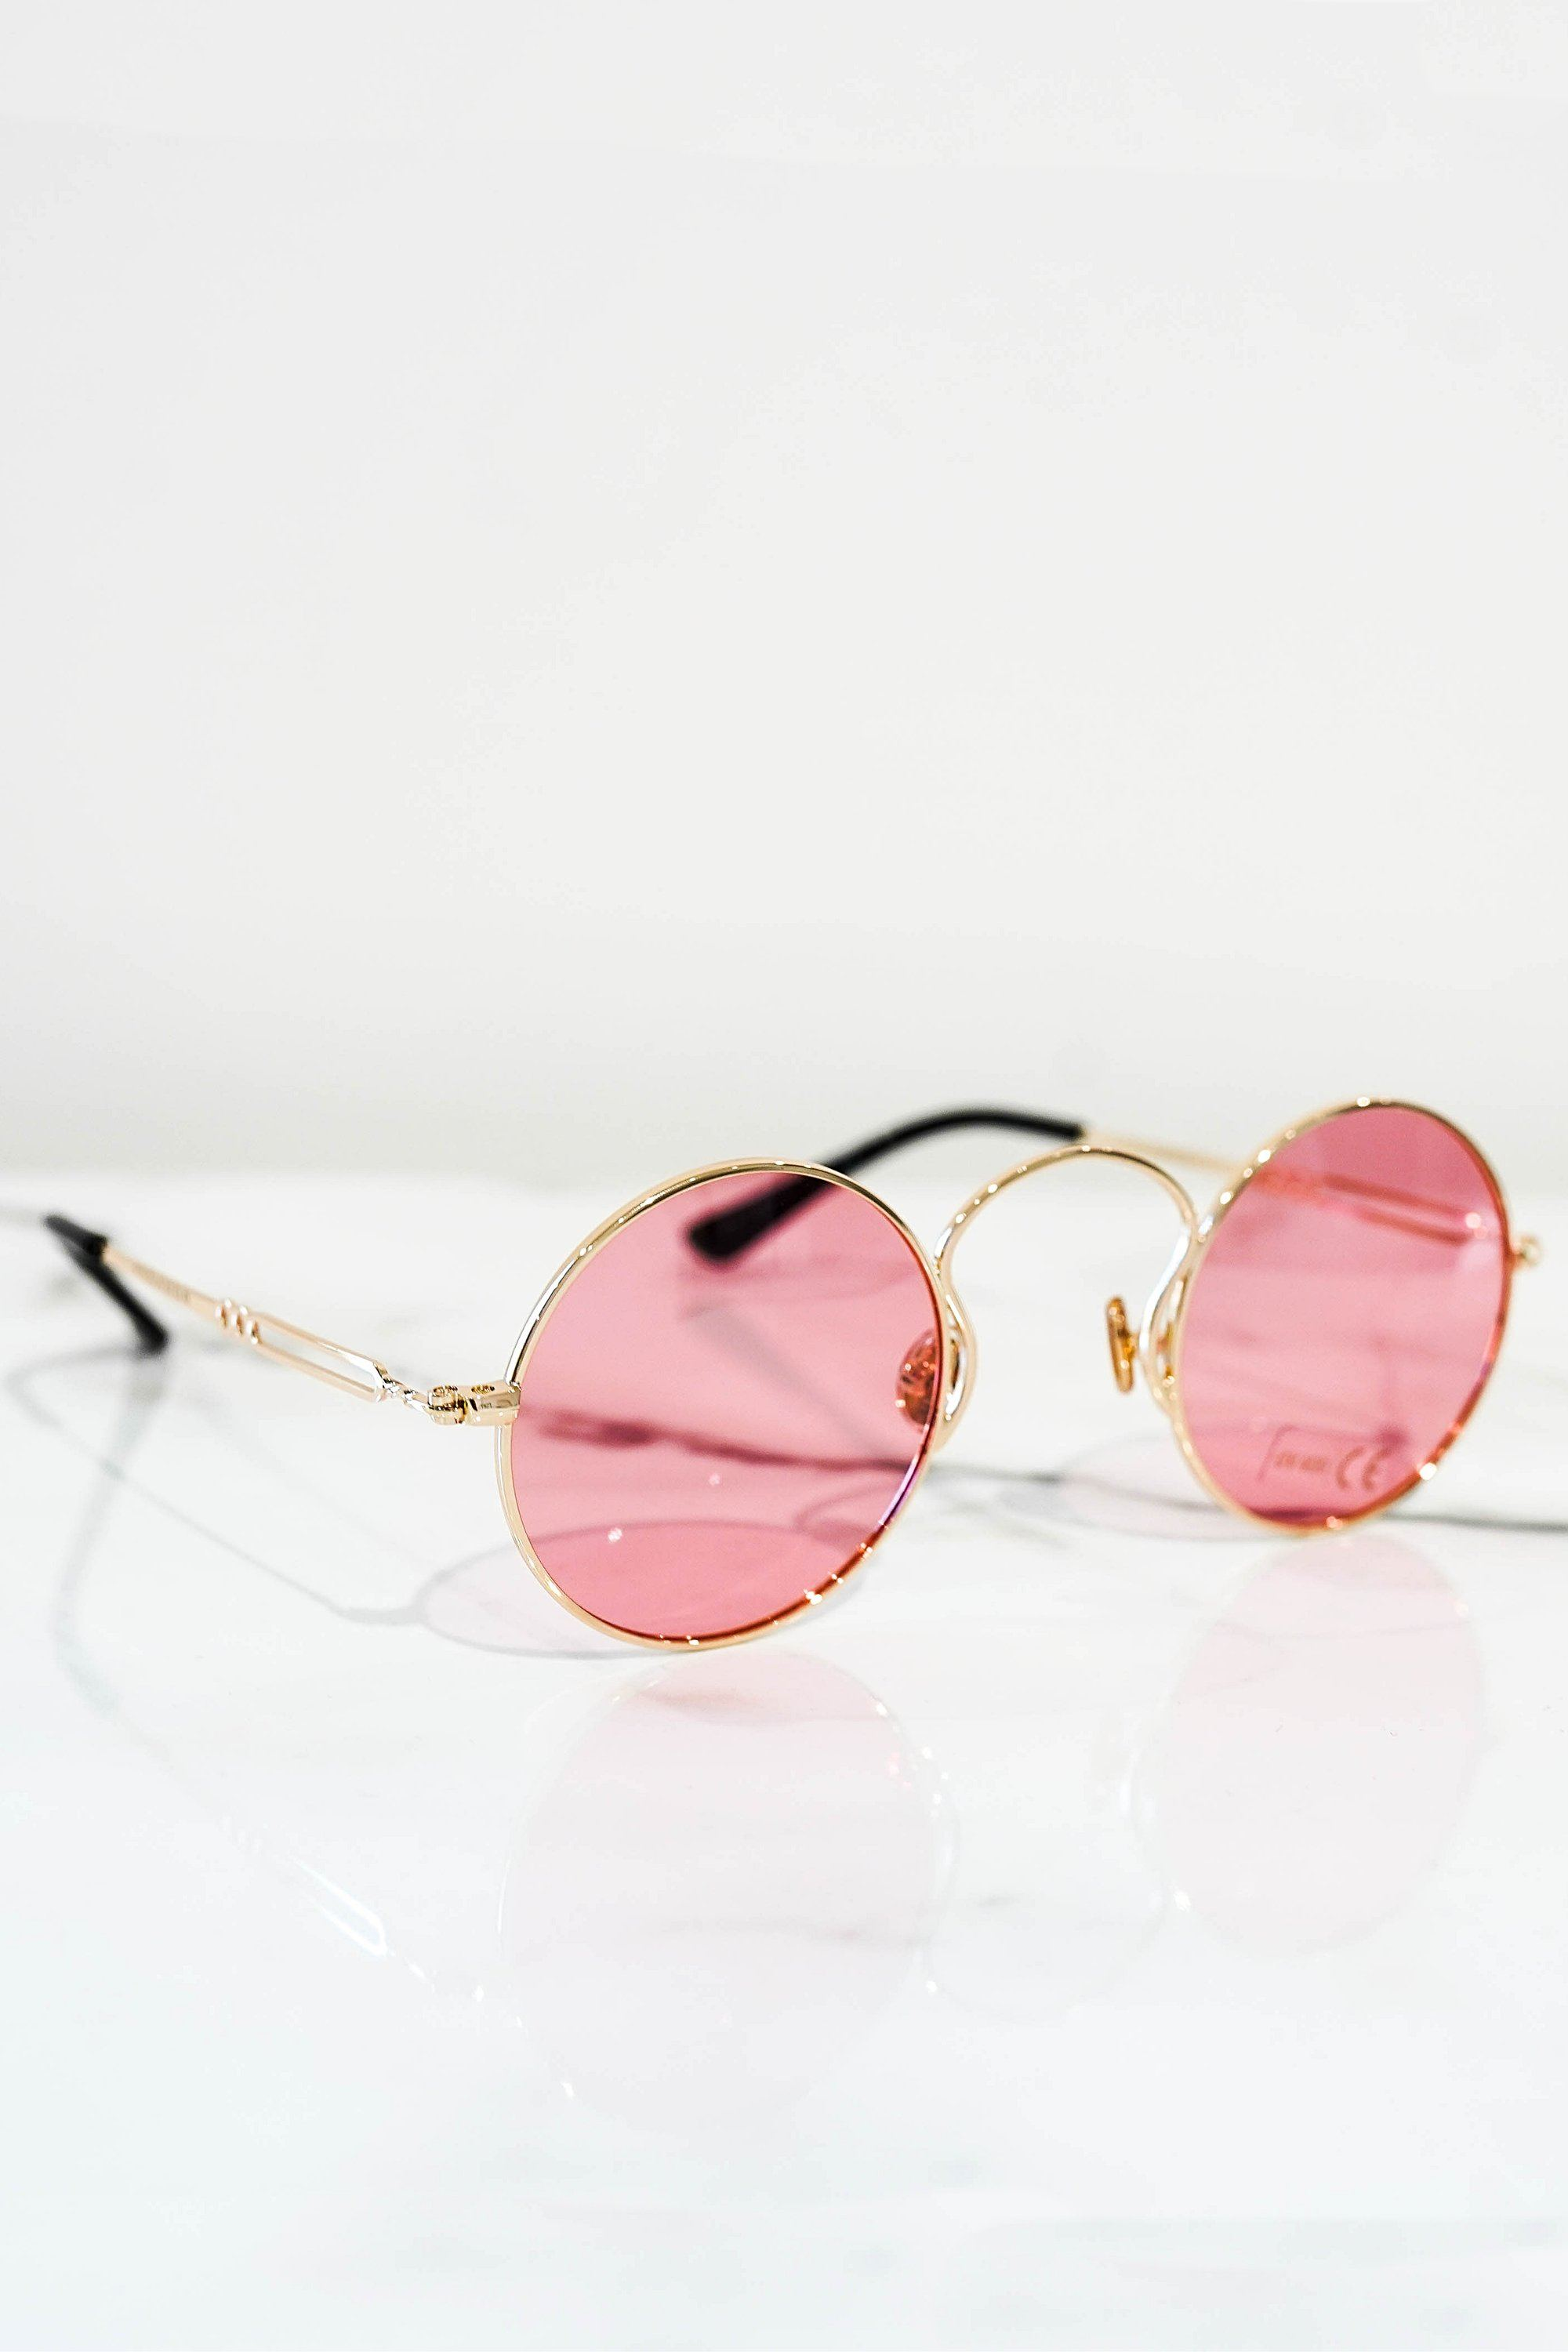 Retro sunglasses gold with red lens - PEGADOR - Dominate the Hype